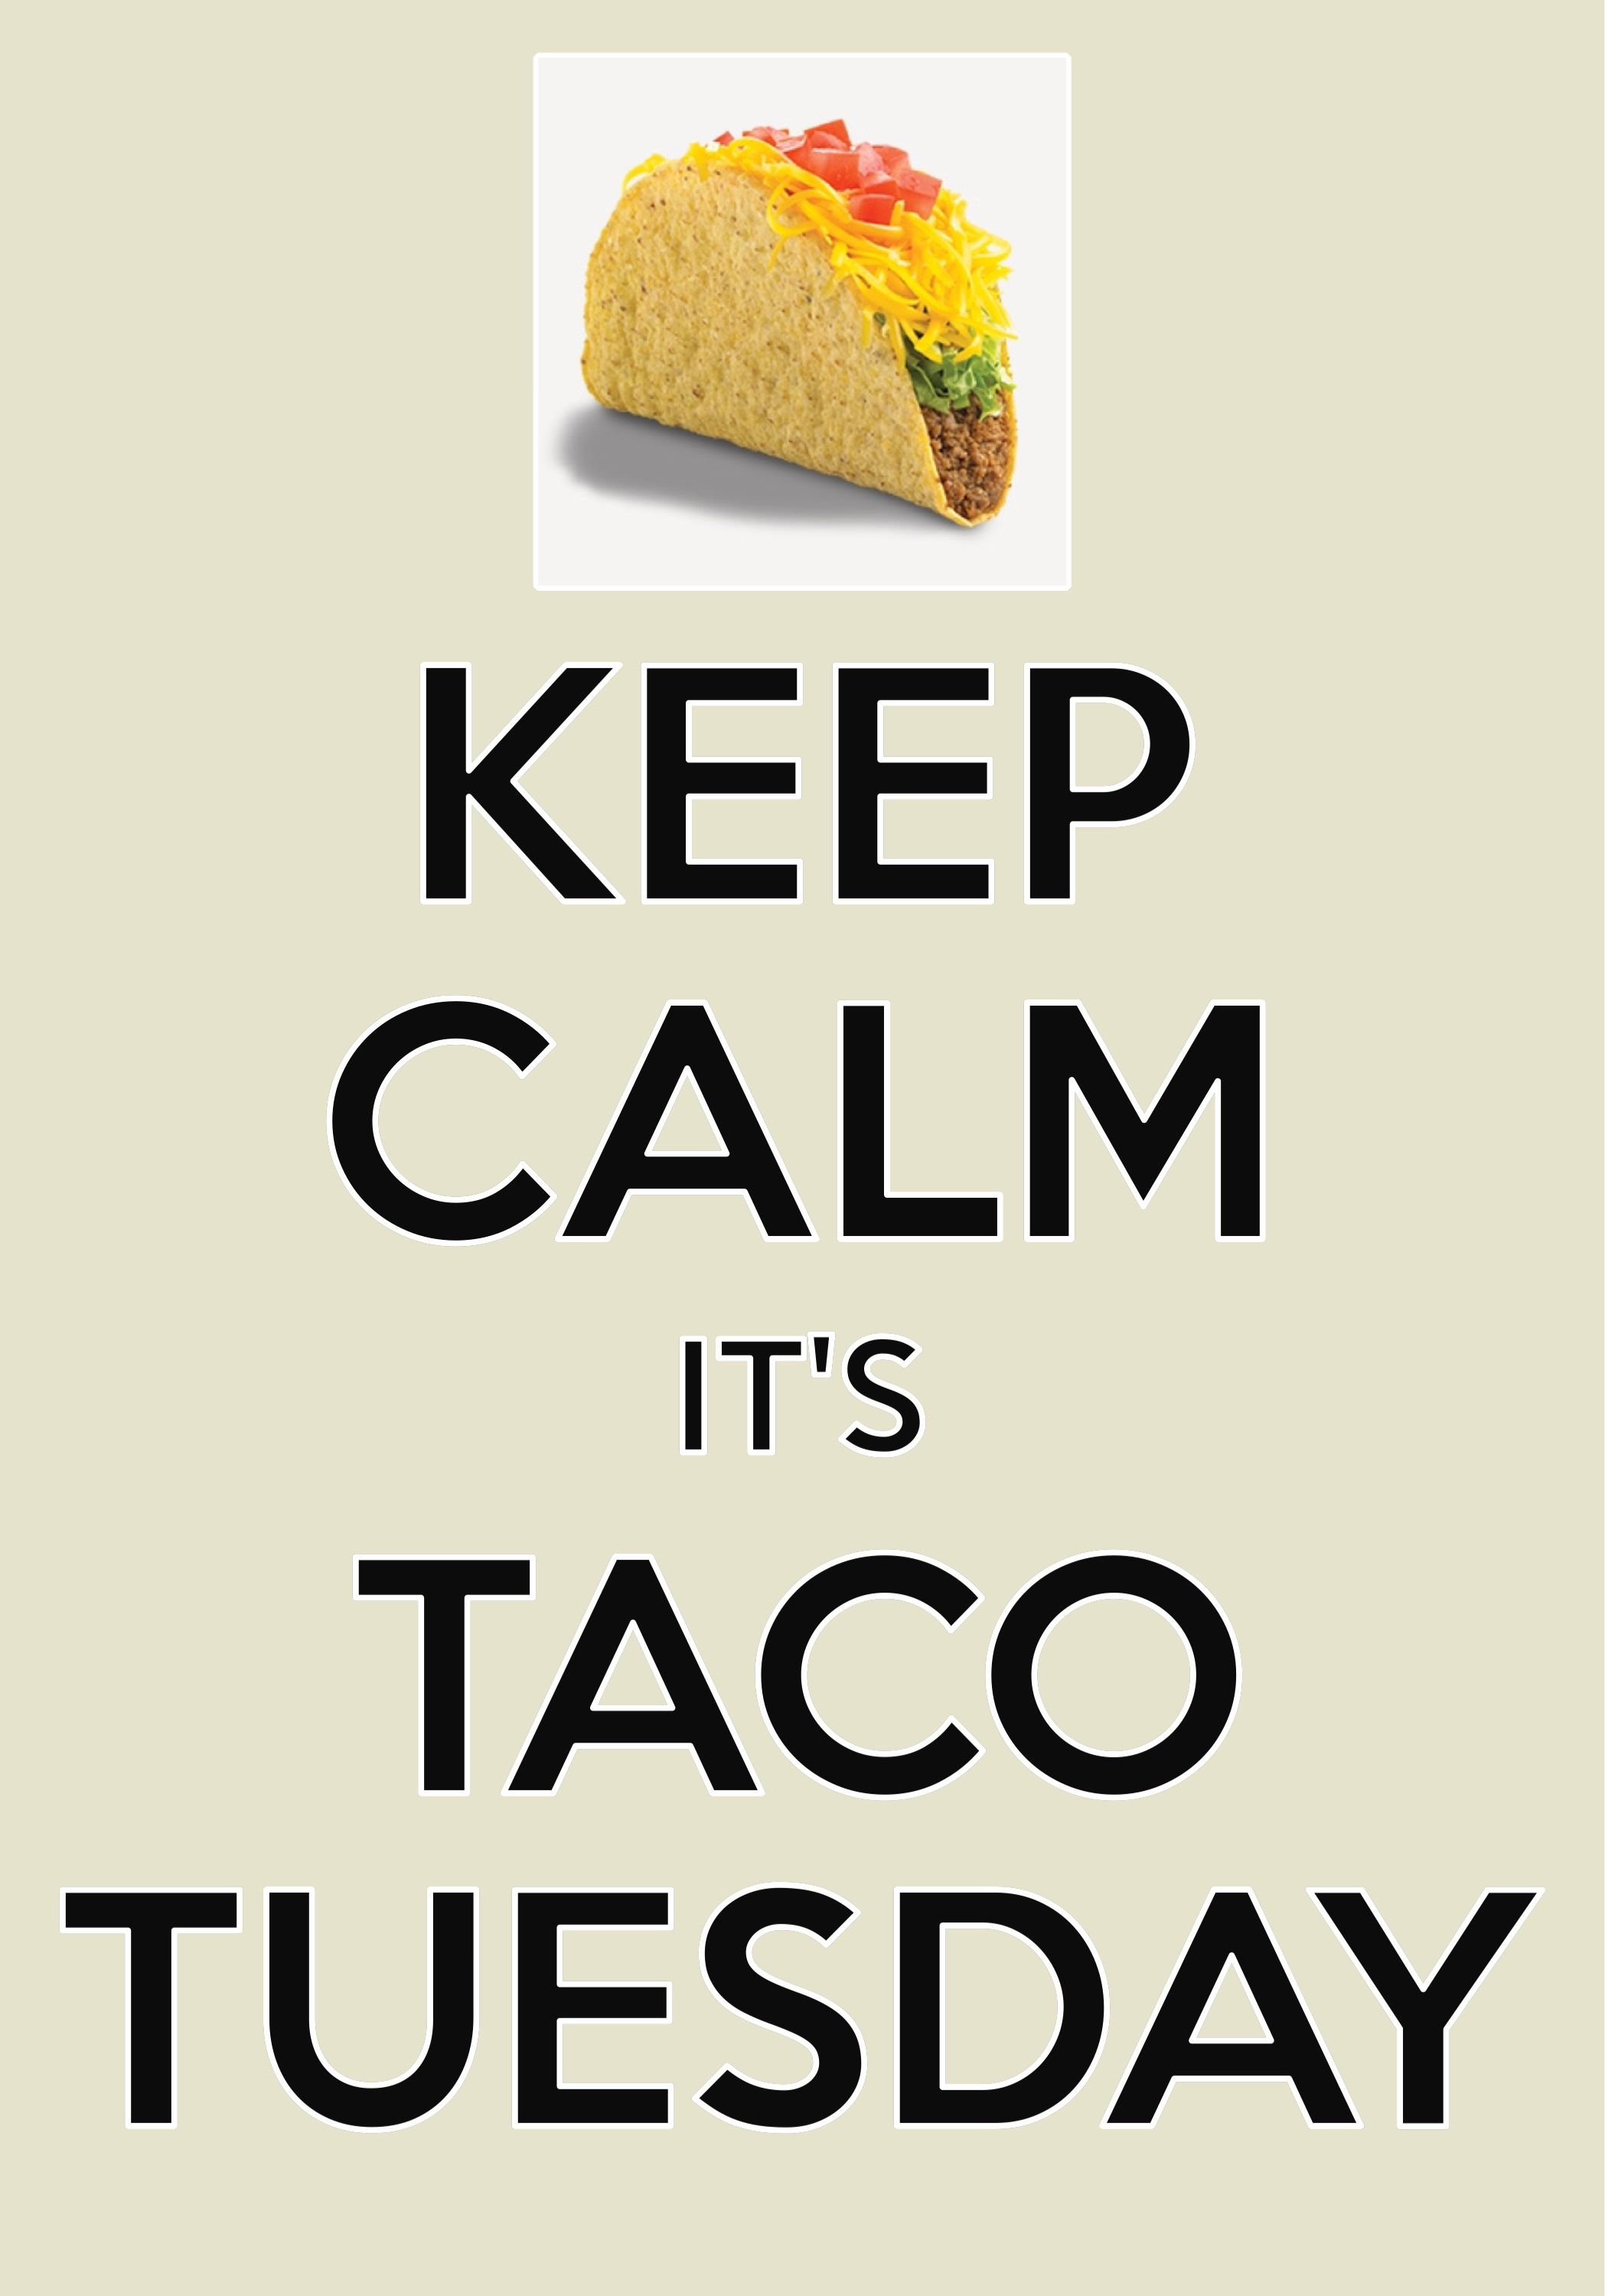 Happy Taco Tuesday Images : happy, tuesday, images, Tuesday, Created, Carry, #keepcalm, #tacotuesday, Happy, Taco,, Tuesday,, Quotes